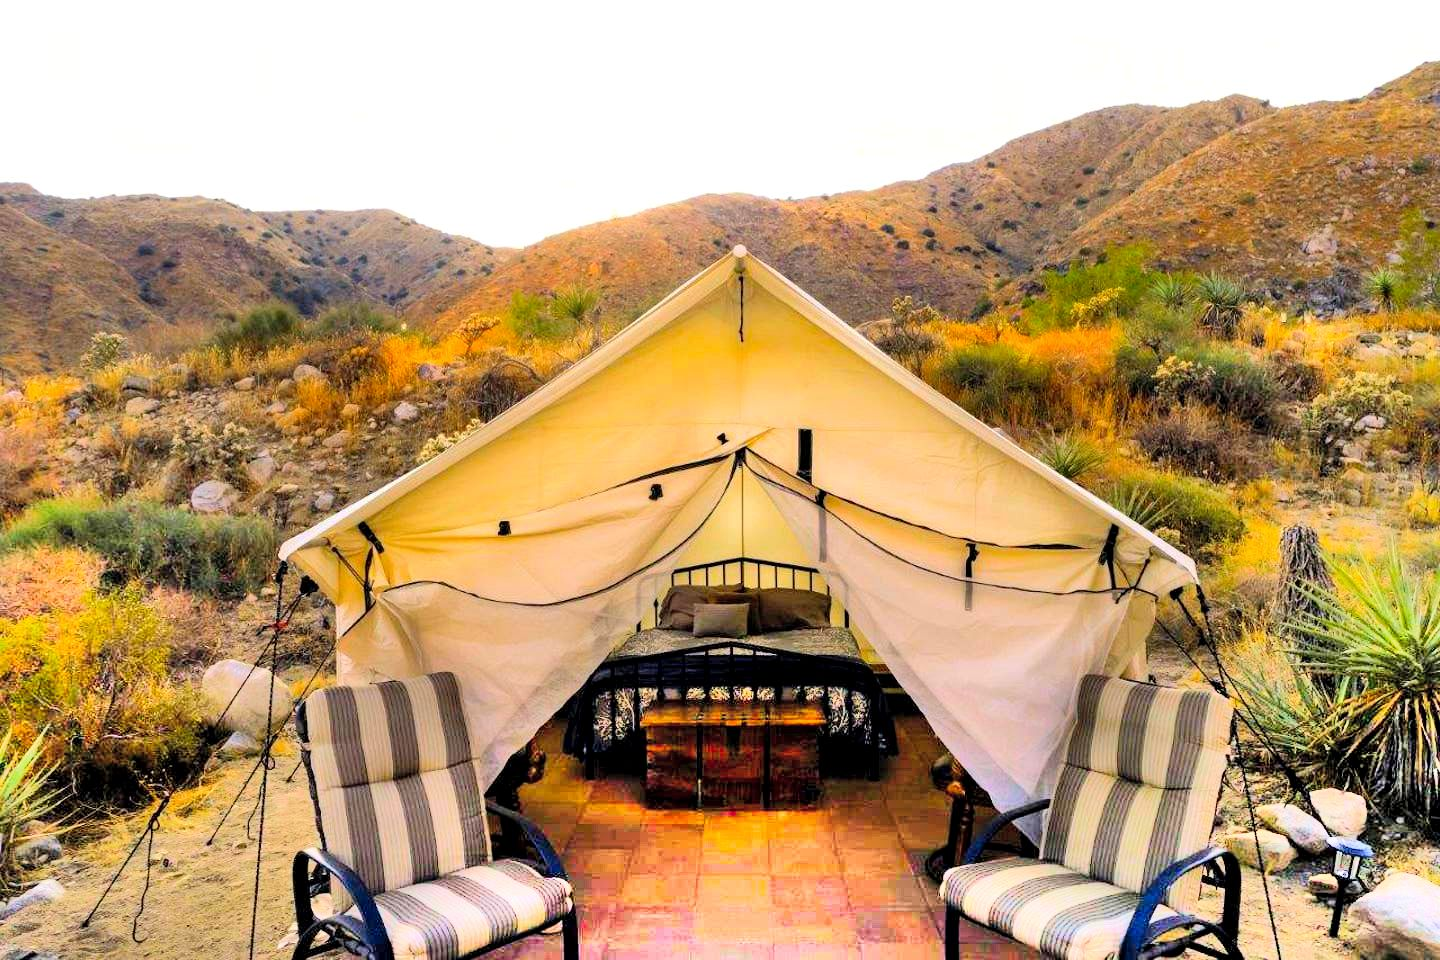 This Morongo Valley accommodation is perfect for a romantic getaway in California